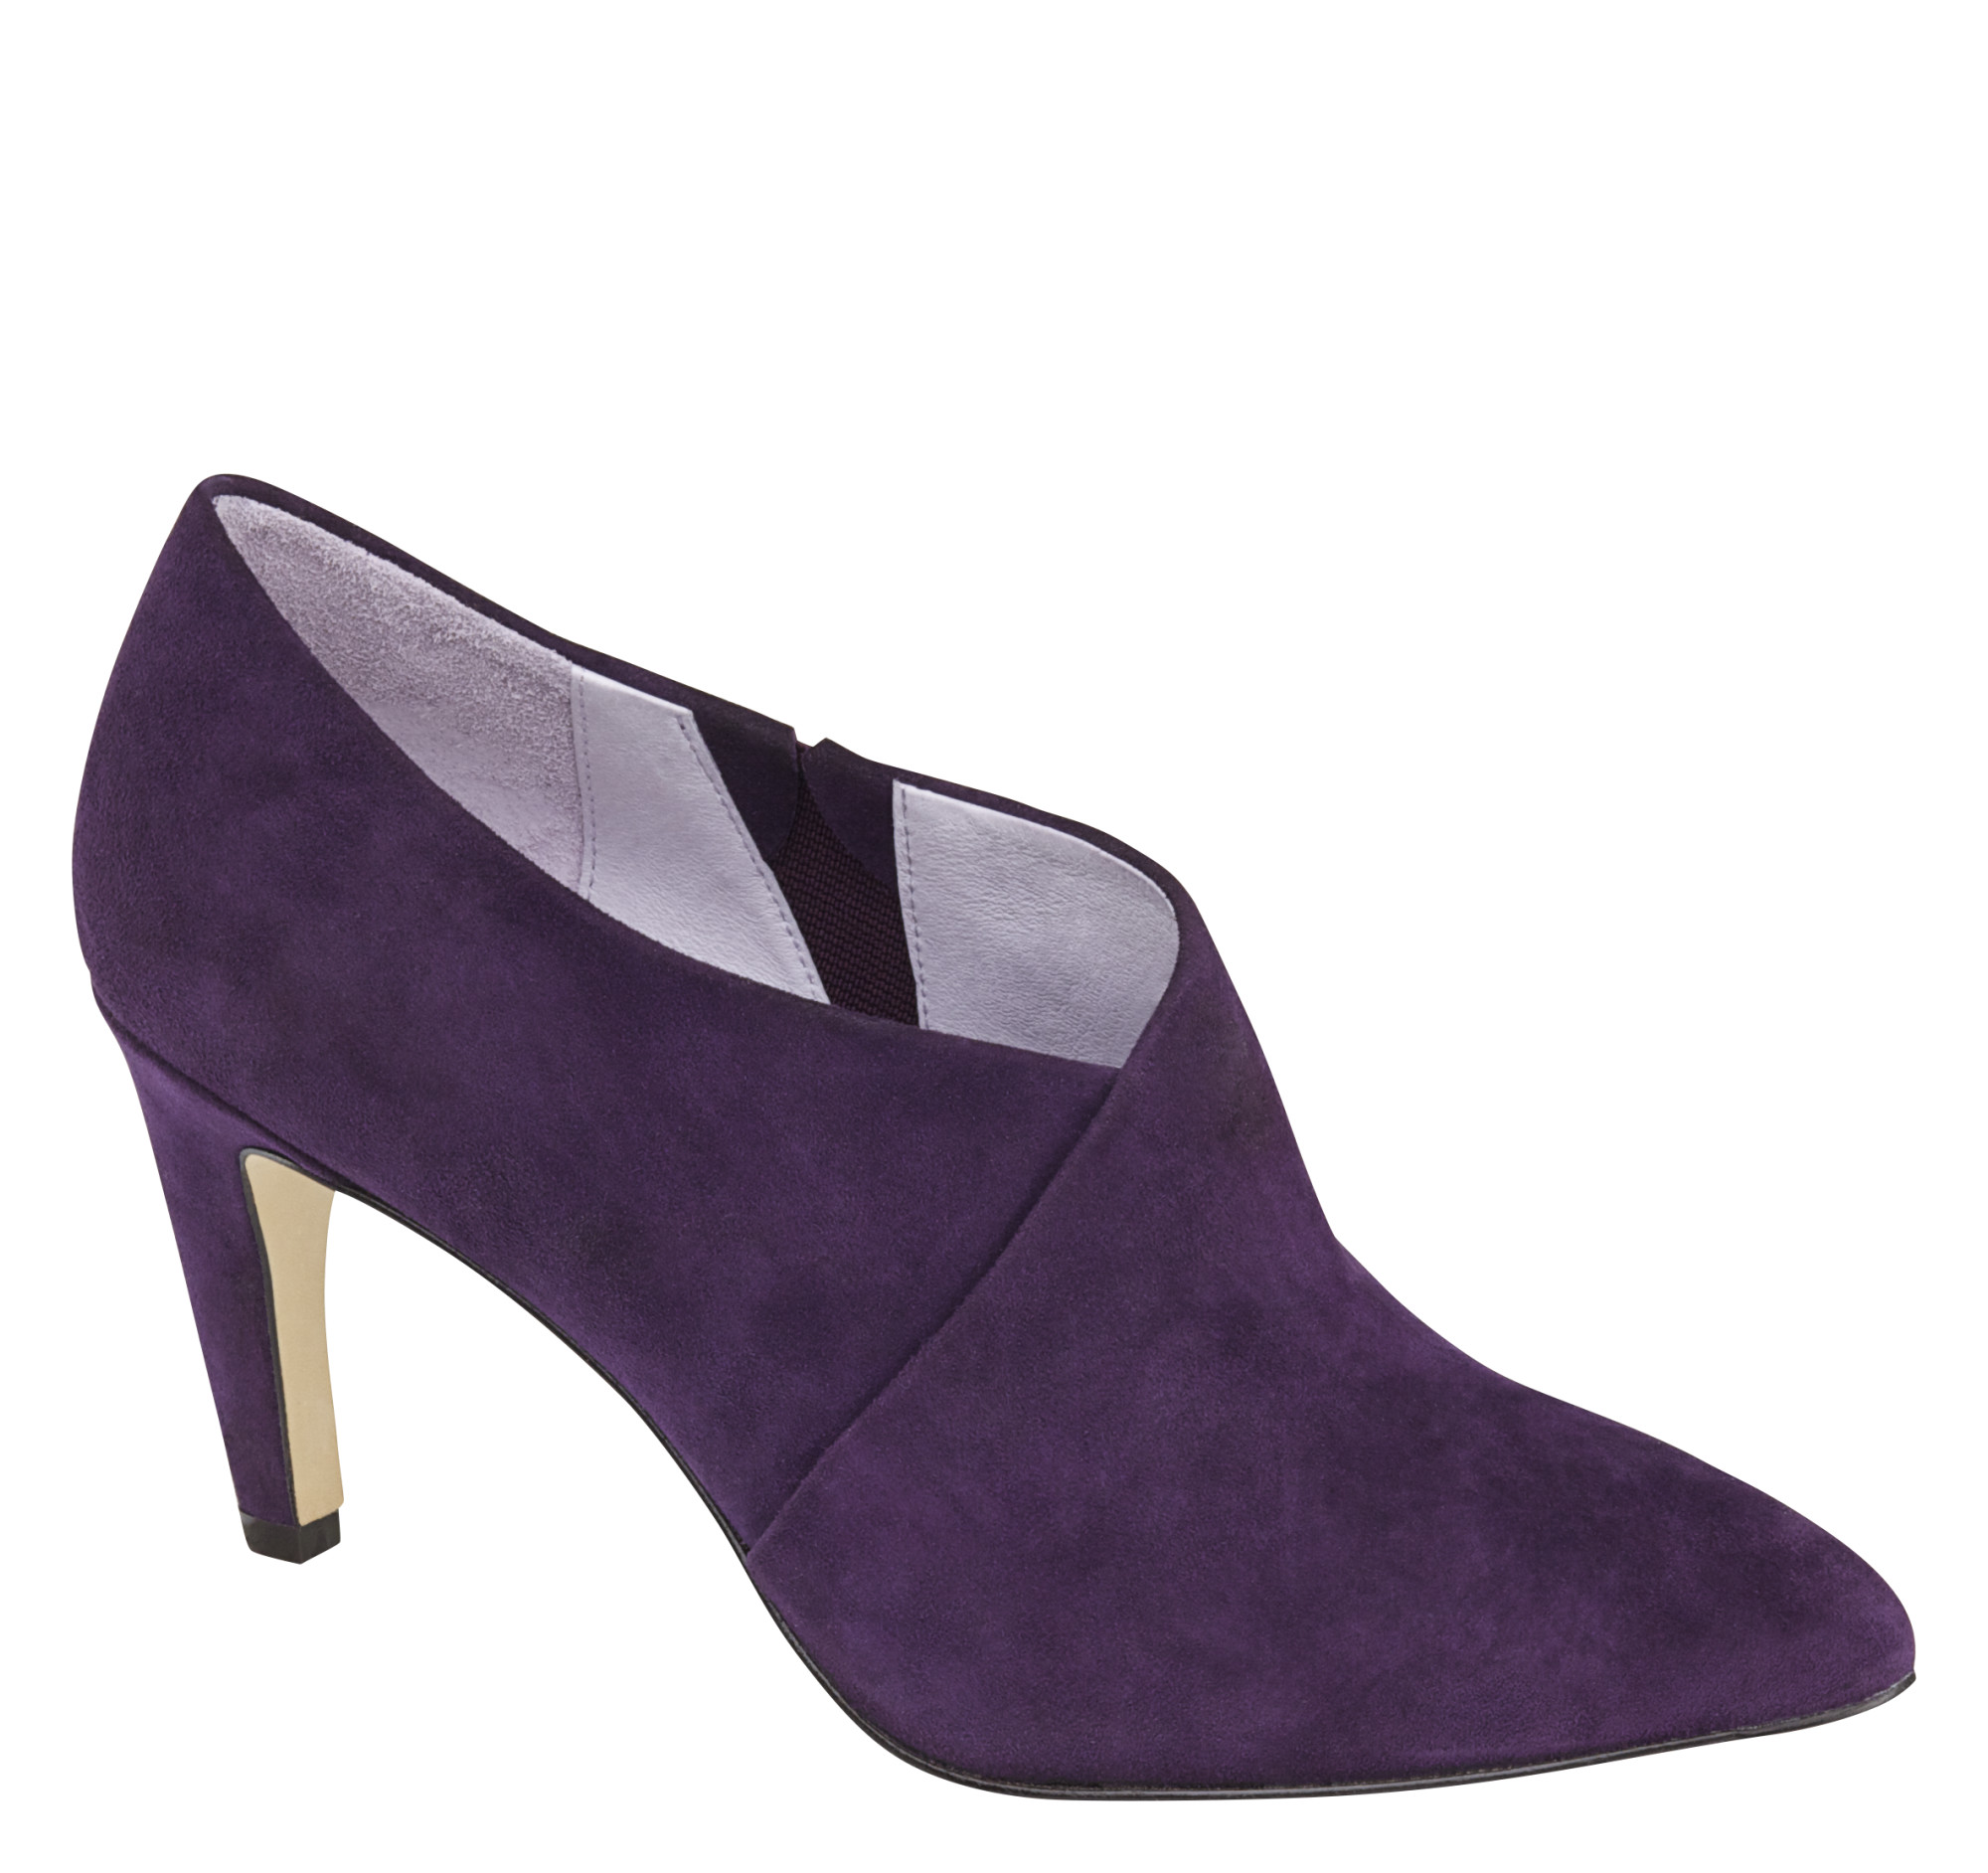 Johnston And Murphy Womens Shoes Reviews